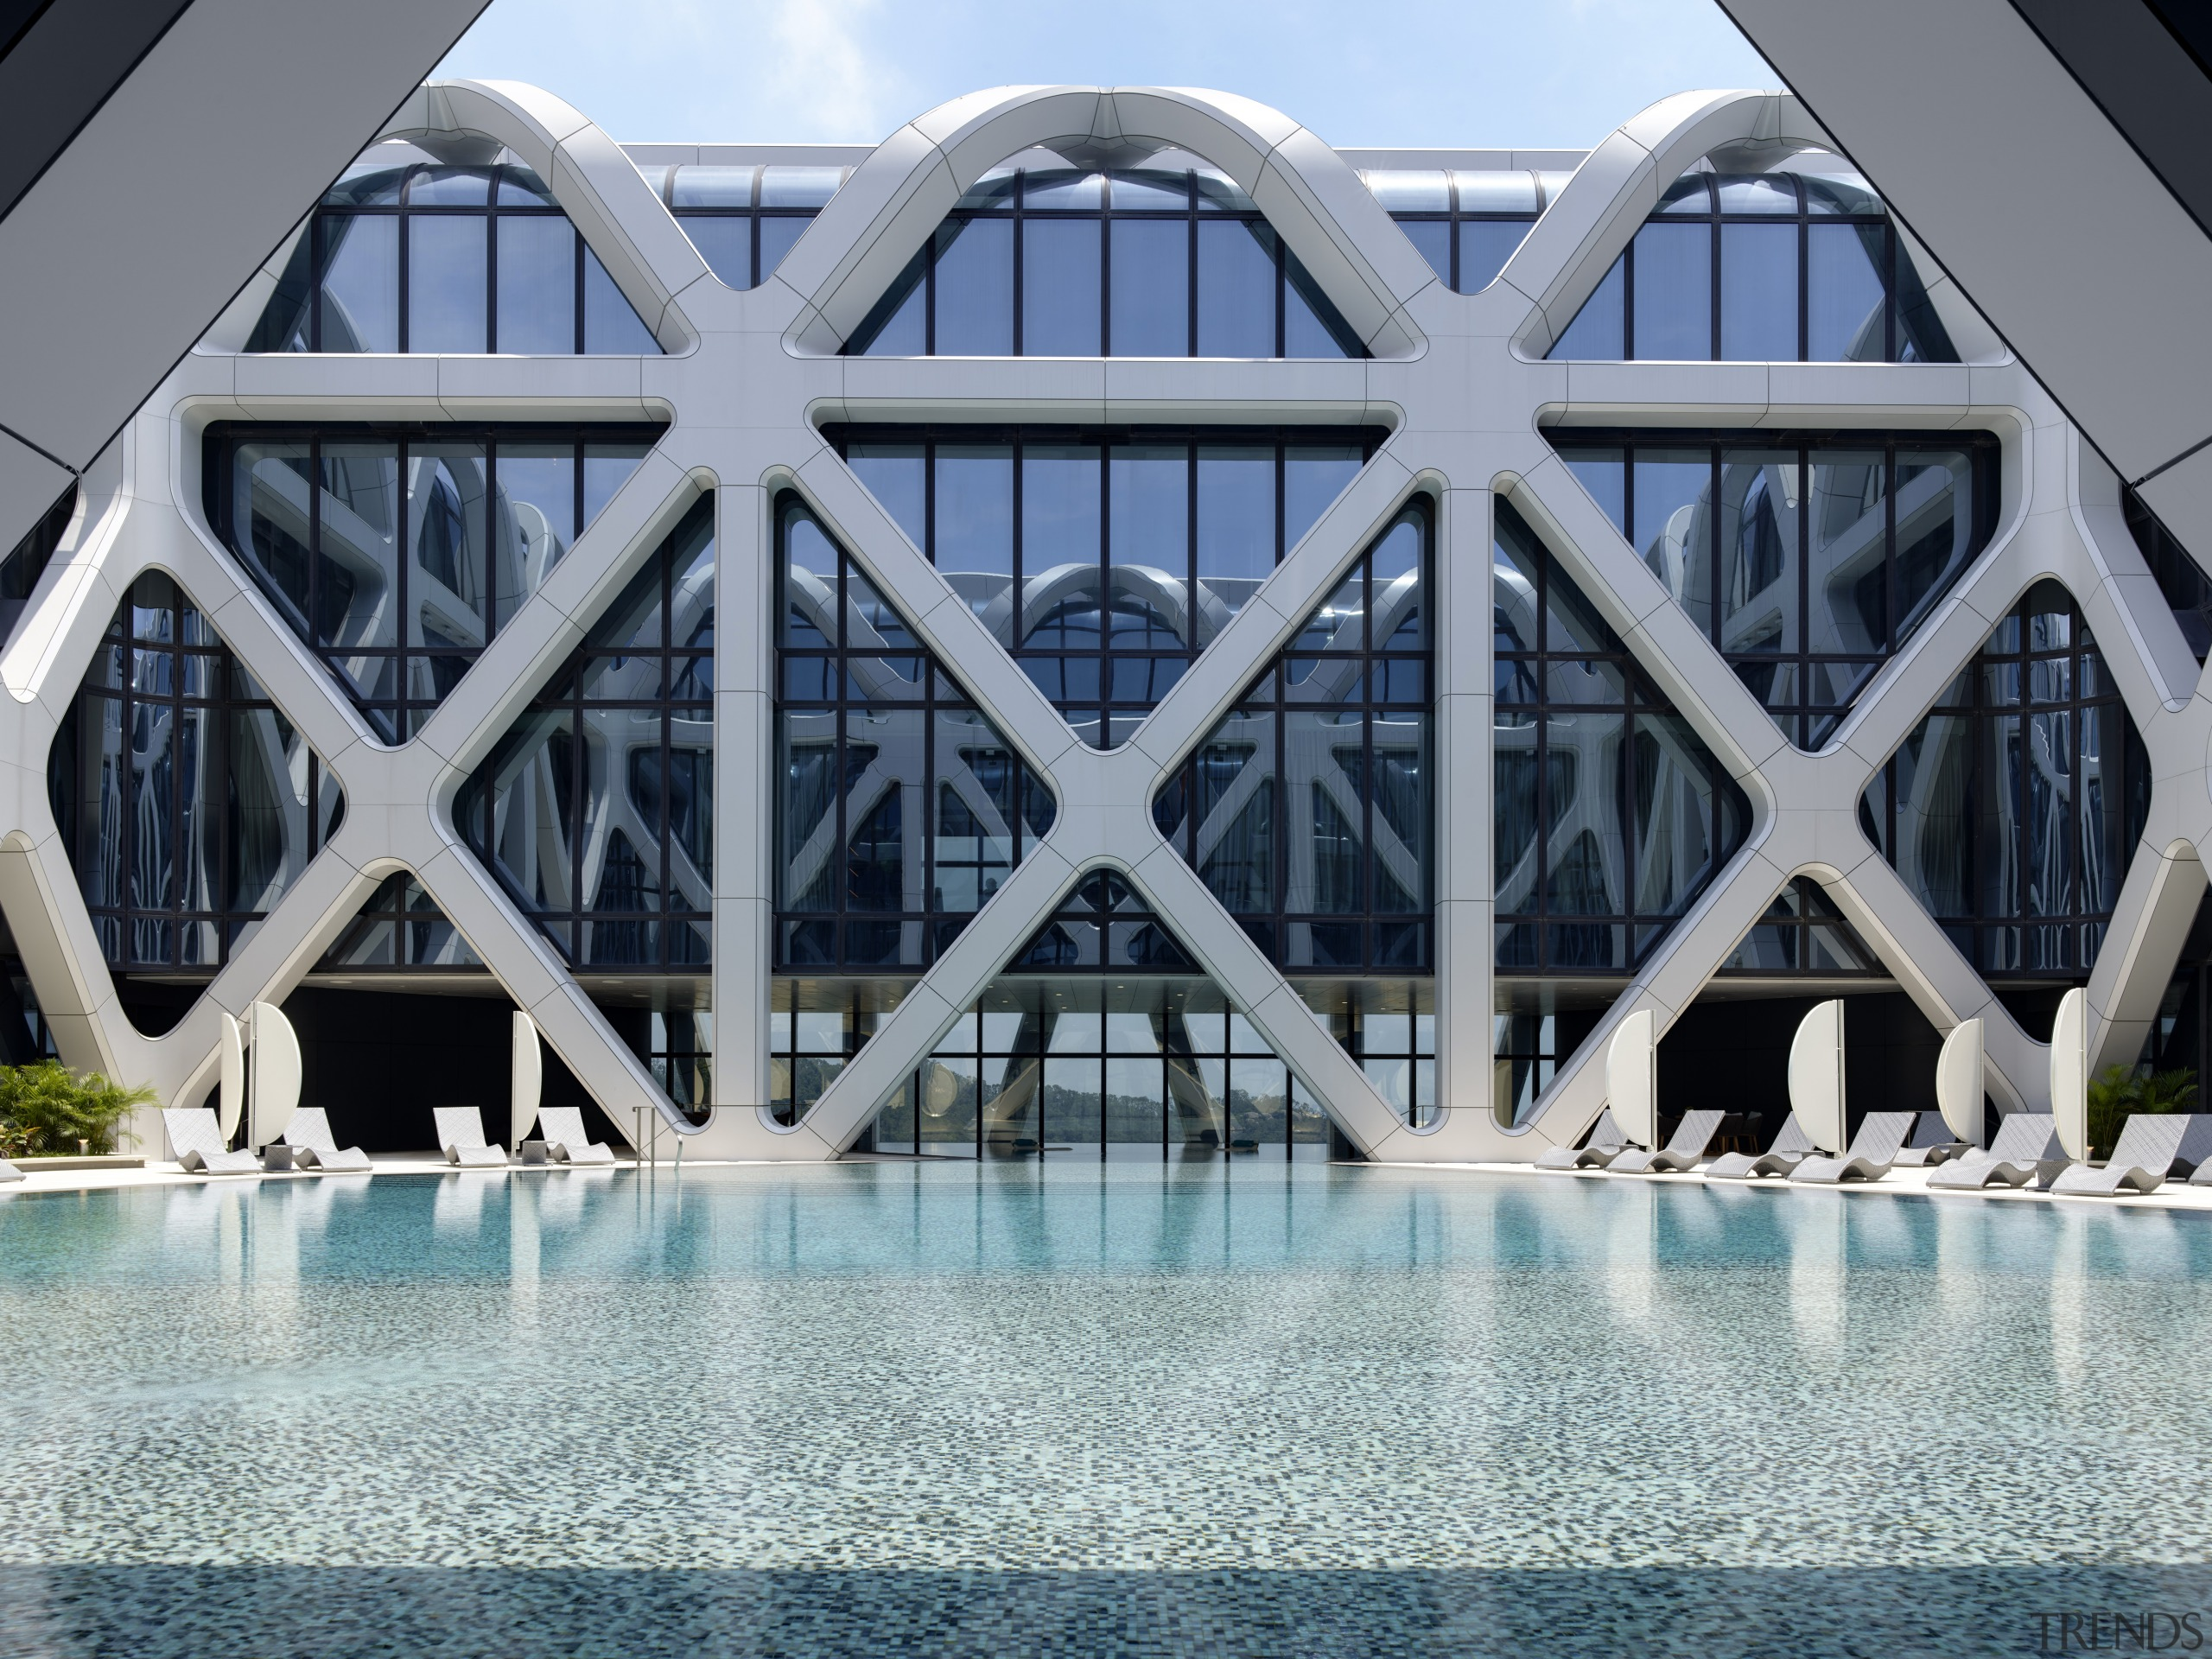 The rooftop pool offers an up-close-and-personal take on architecture, building, daylighting, daytime, reflection, structure, swimming pool, symmetry, water, gray